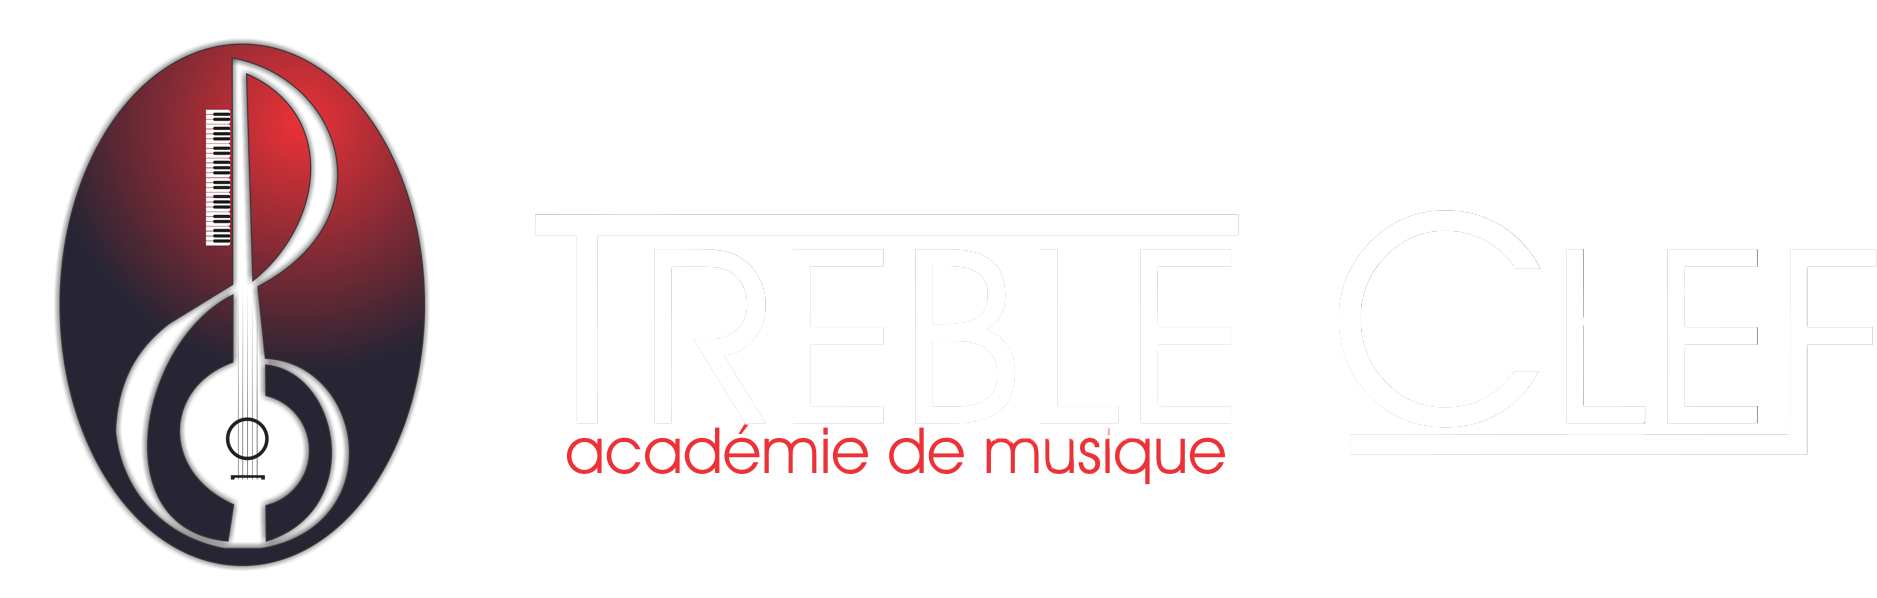 Treble Clef Academy - Music Lessons